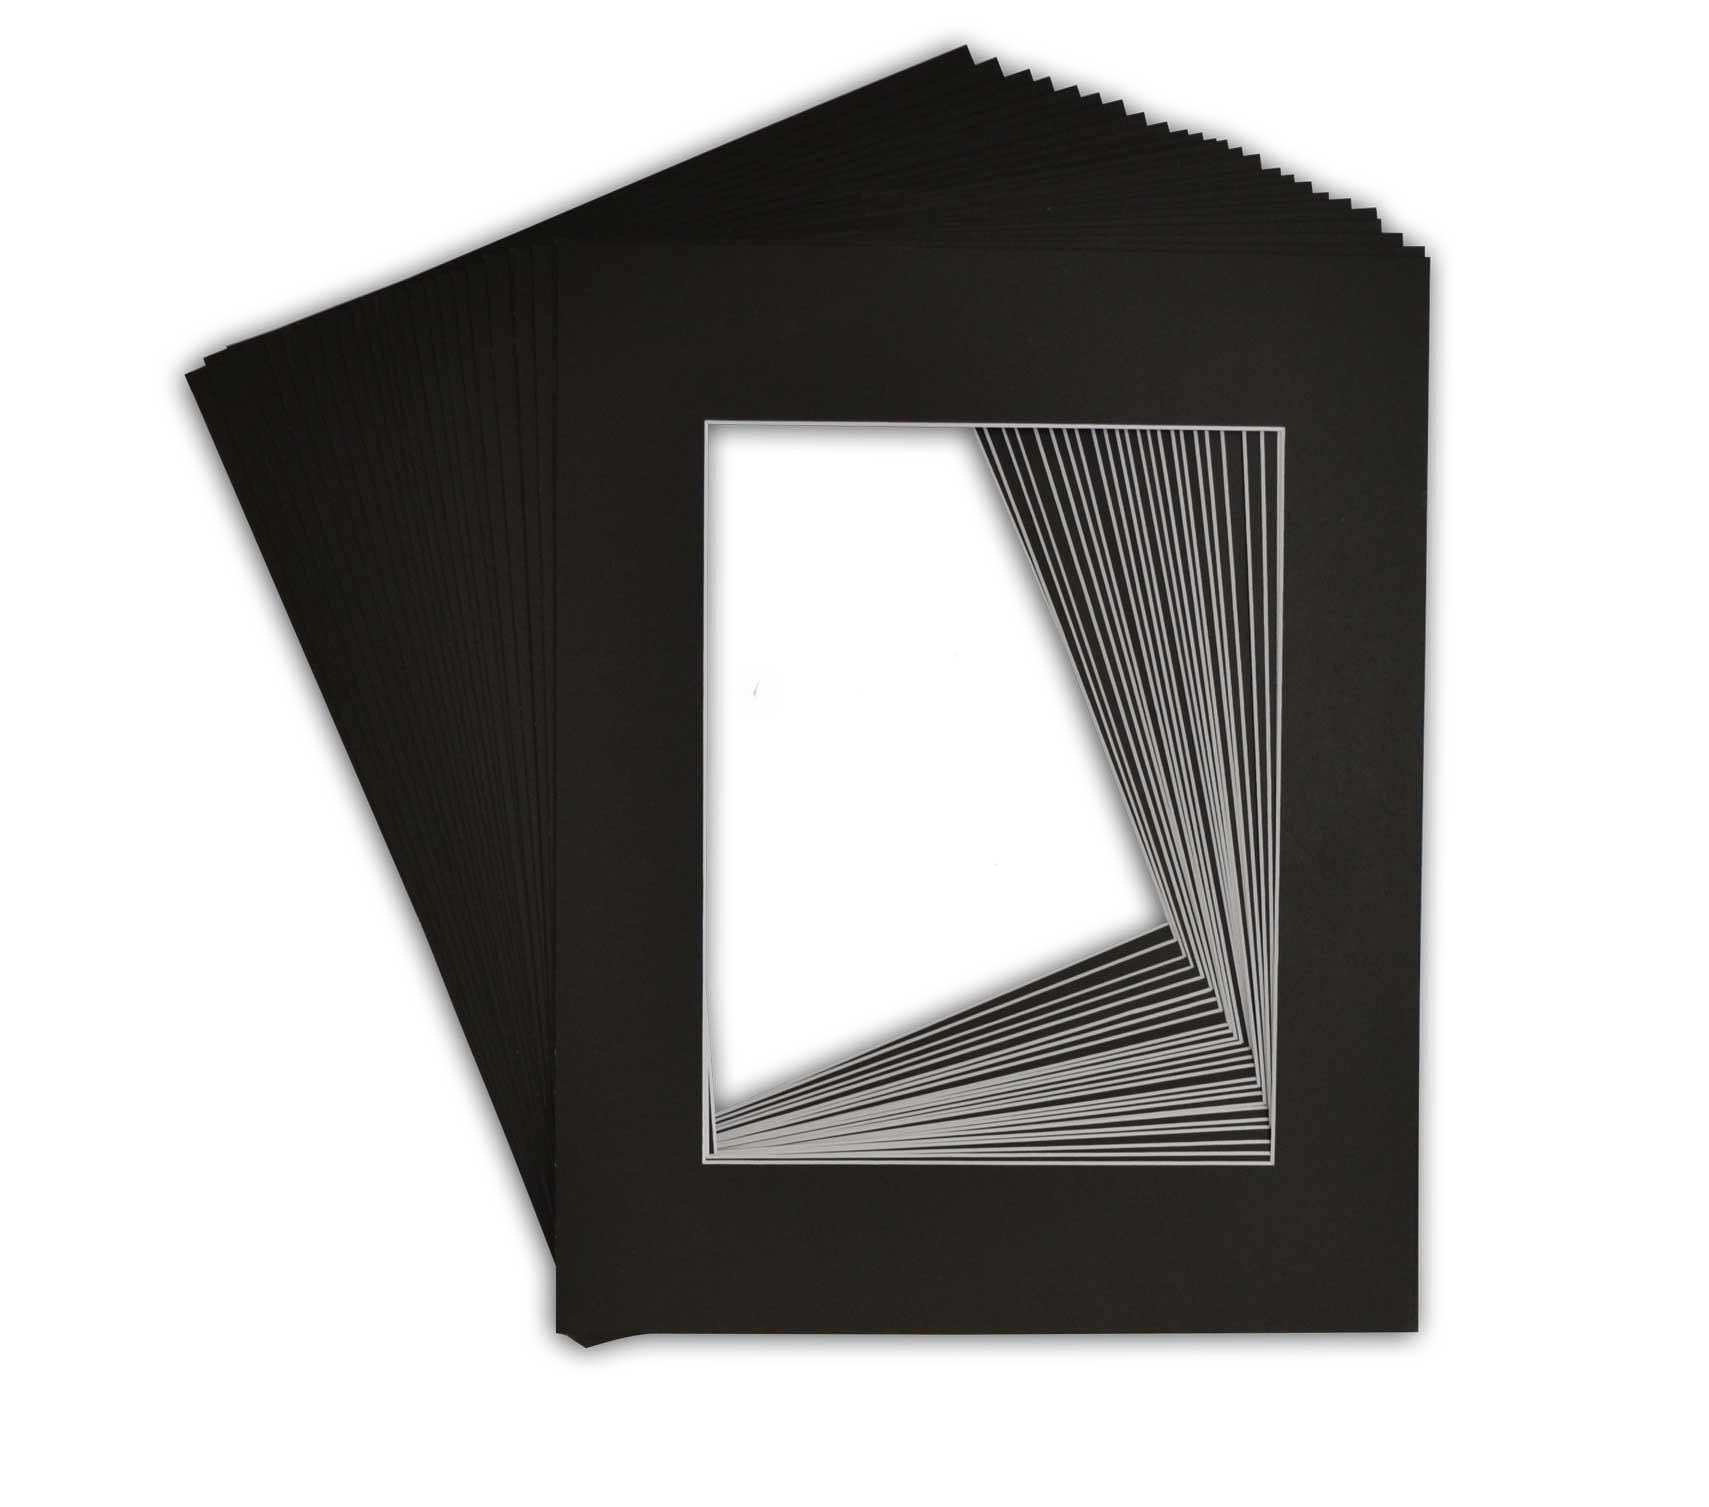 Golden State Art, Pack of 25 Black Pre-Cut 16x20 Picture Mat for 11x14 Photo with White Core Bevel Cut Mattes Sets. Includes 25 High Premier Acid Free Mats & 25 Backing Board & 25 Clear Bags by Golden State Art (Image #2)